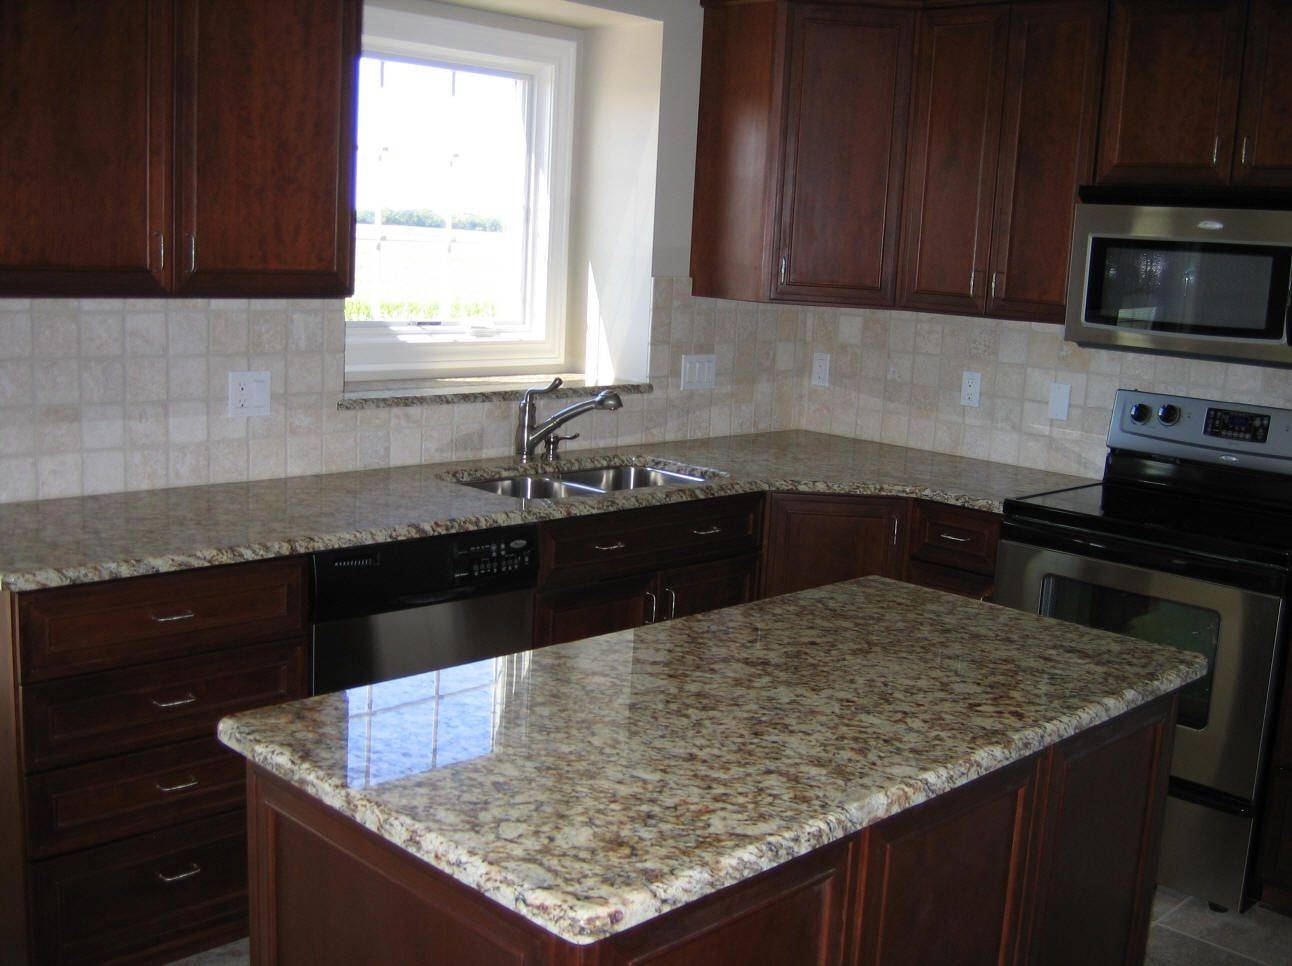 Granite Countertop : Foil Finish Cabinets Whirlpool Dishwasher Intended For Crackle Glass Pendant Lights (View 4 of 15)